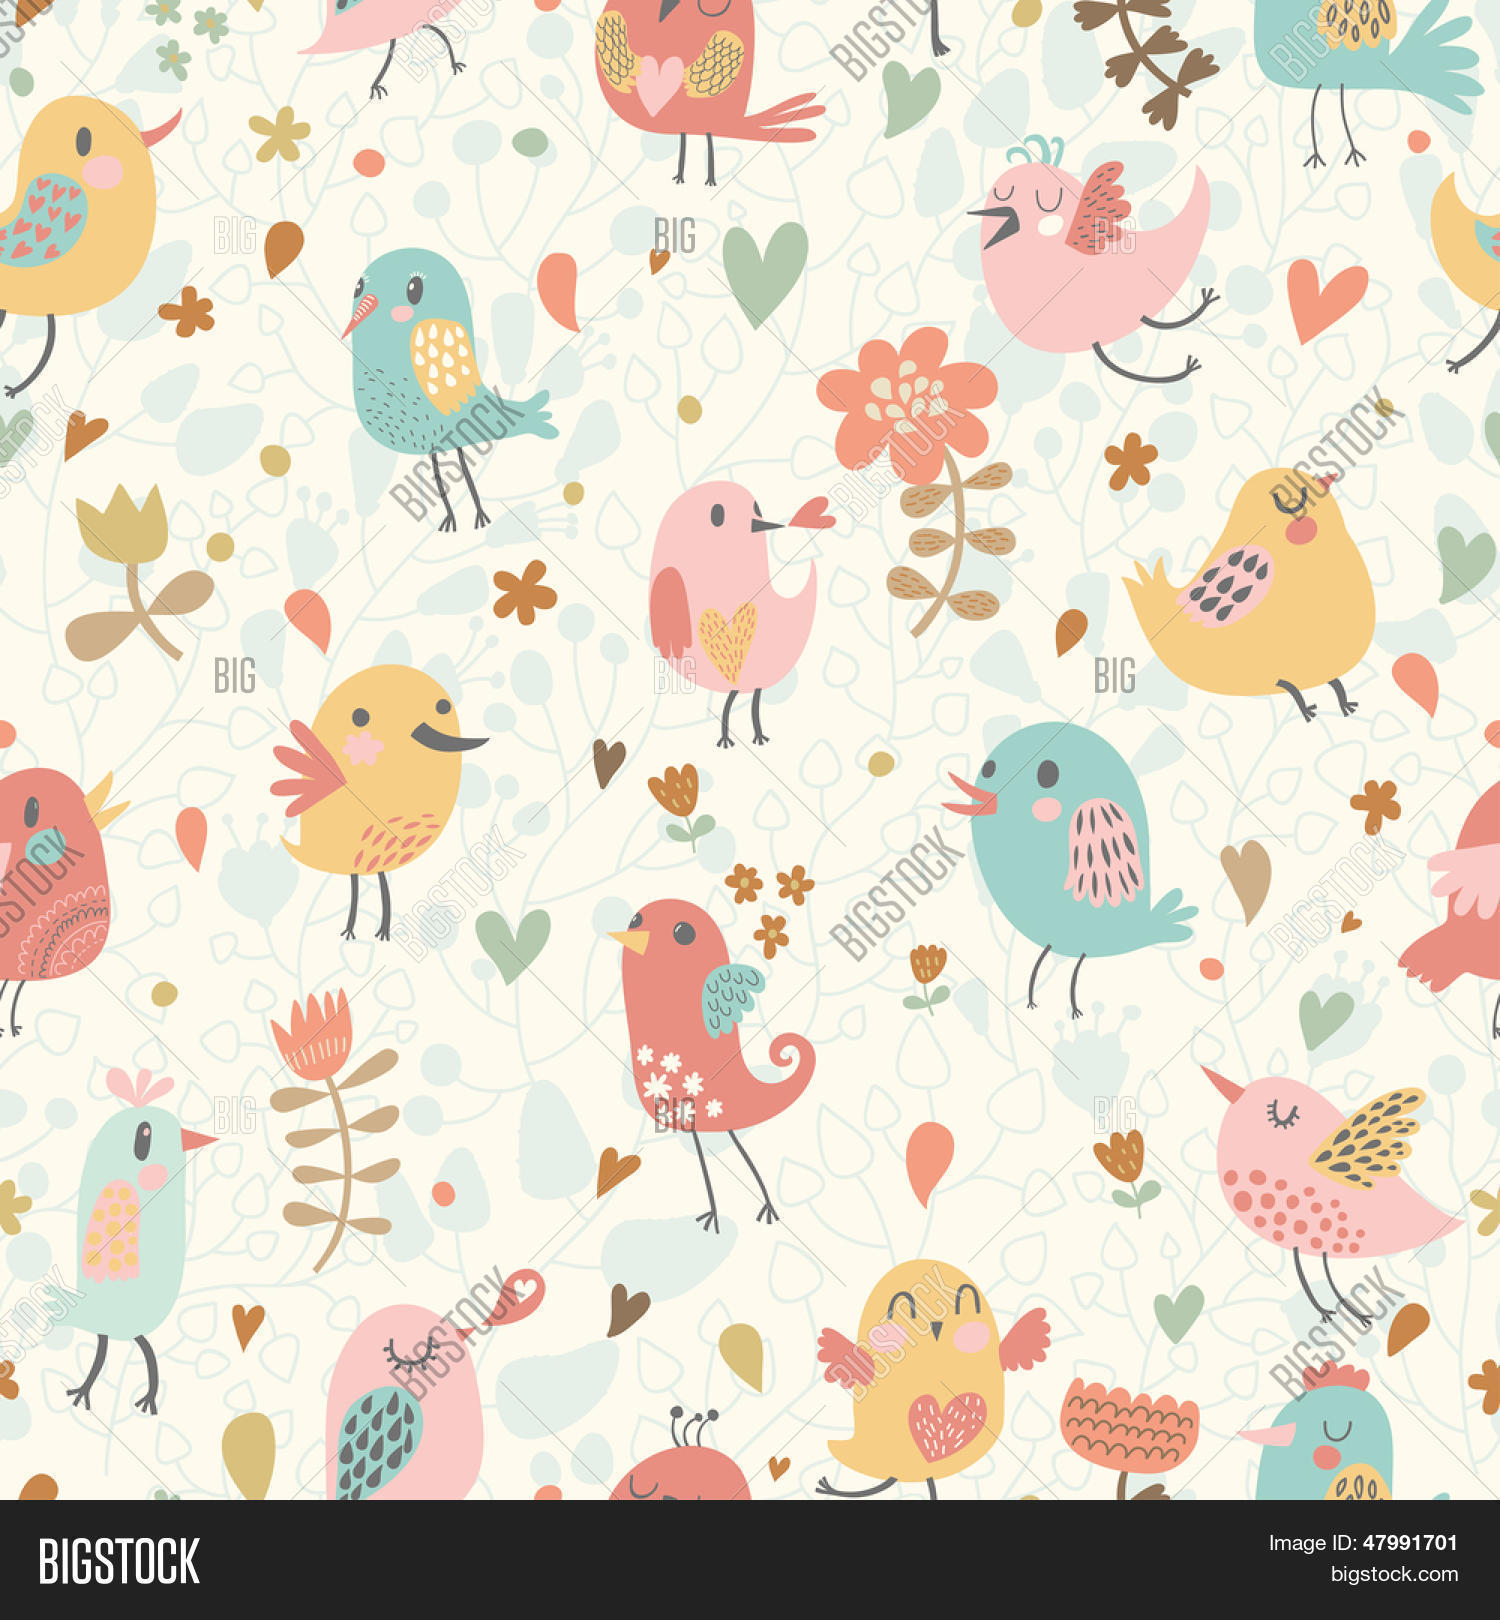 Wallpapers pattern fills web page backgrounds surface textures - Cute Seamless Pattern With Small Birds And Flowers Spring Vector Background In Pastel Colors